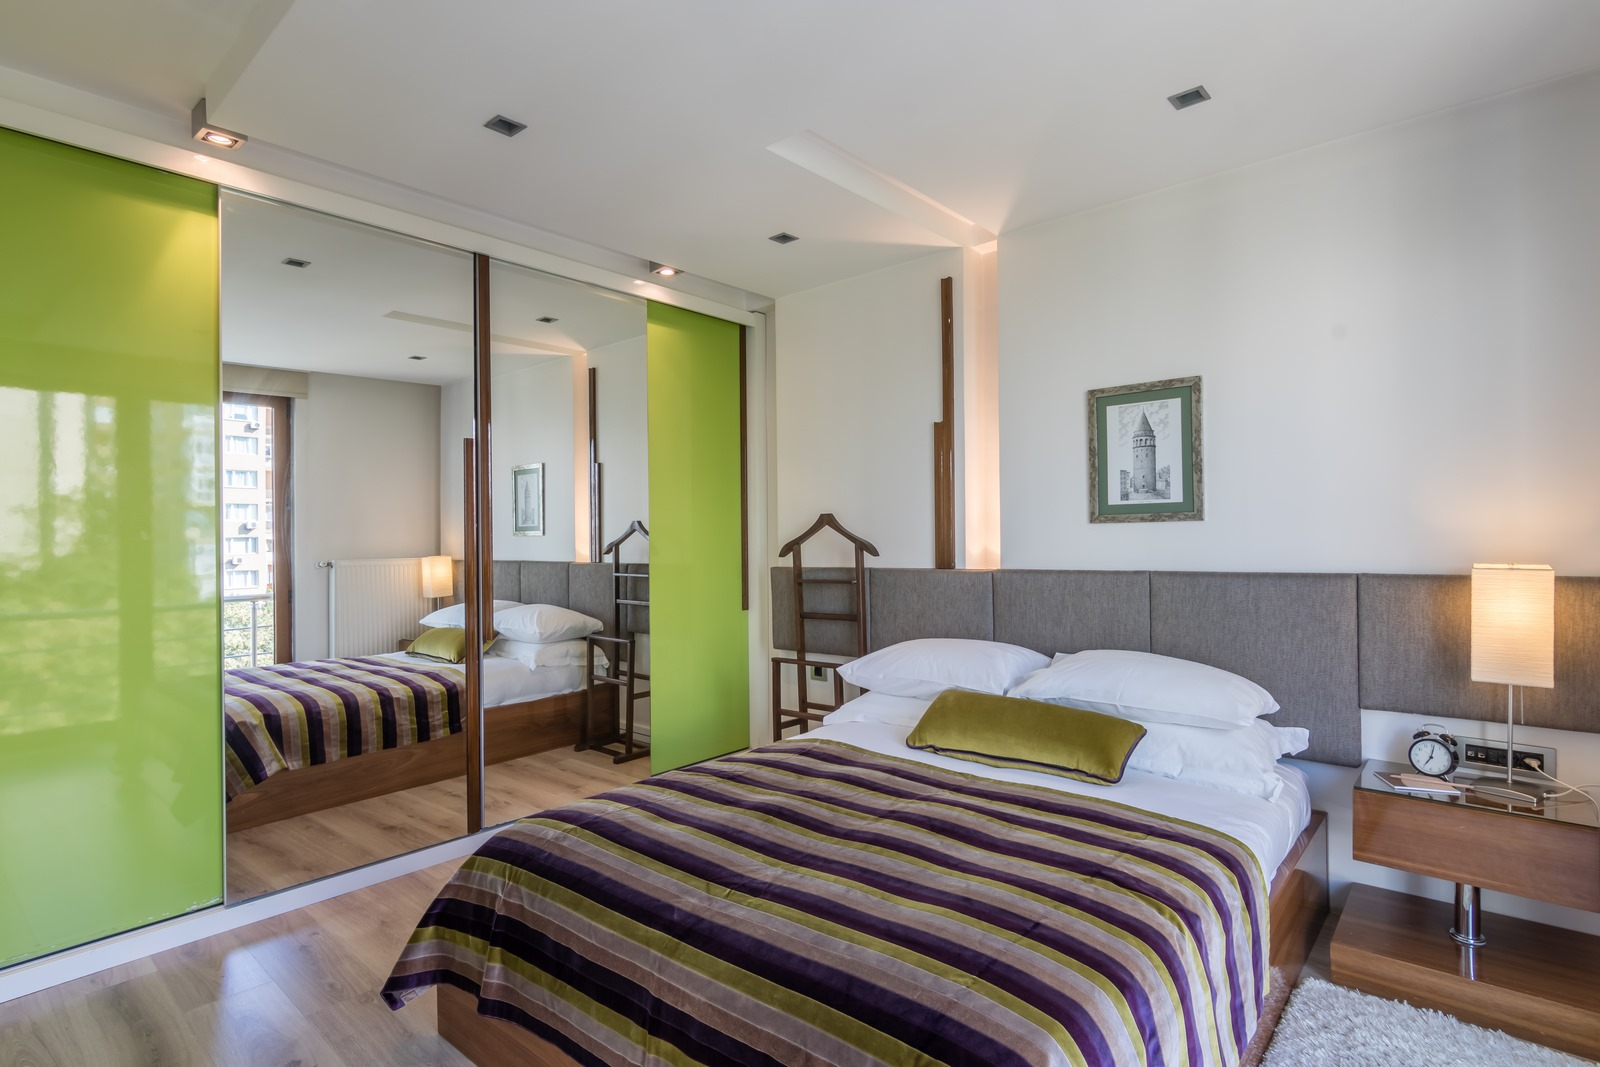 Bedroom at Aura Suites - Citybase Apartments